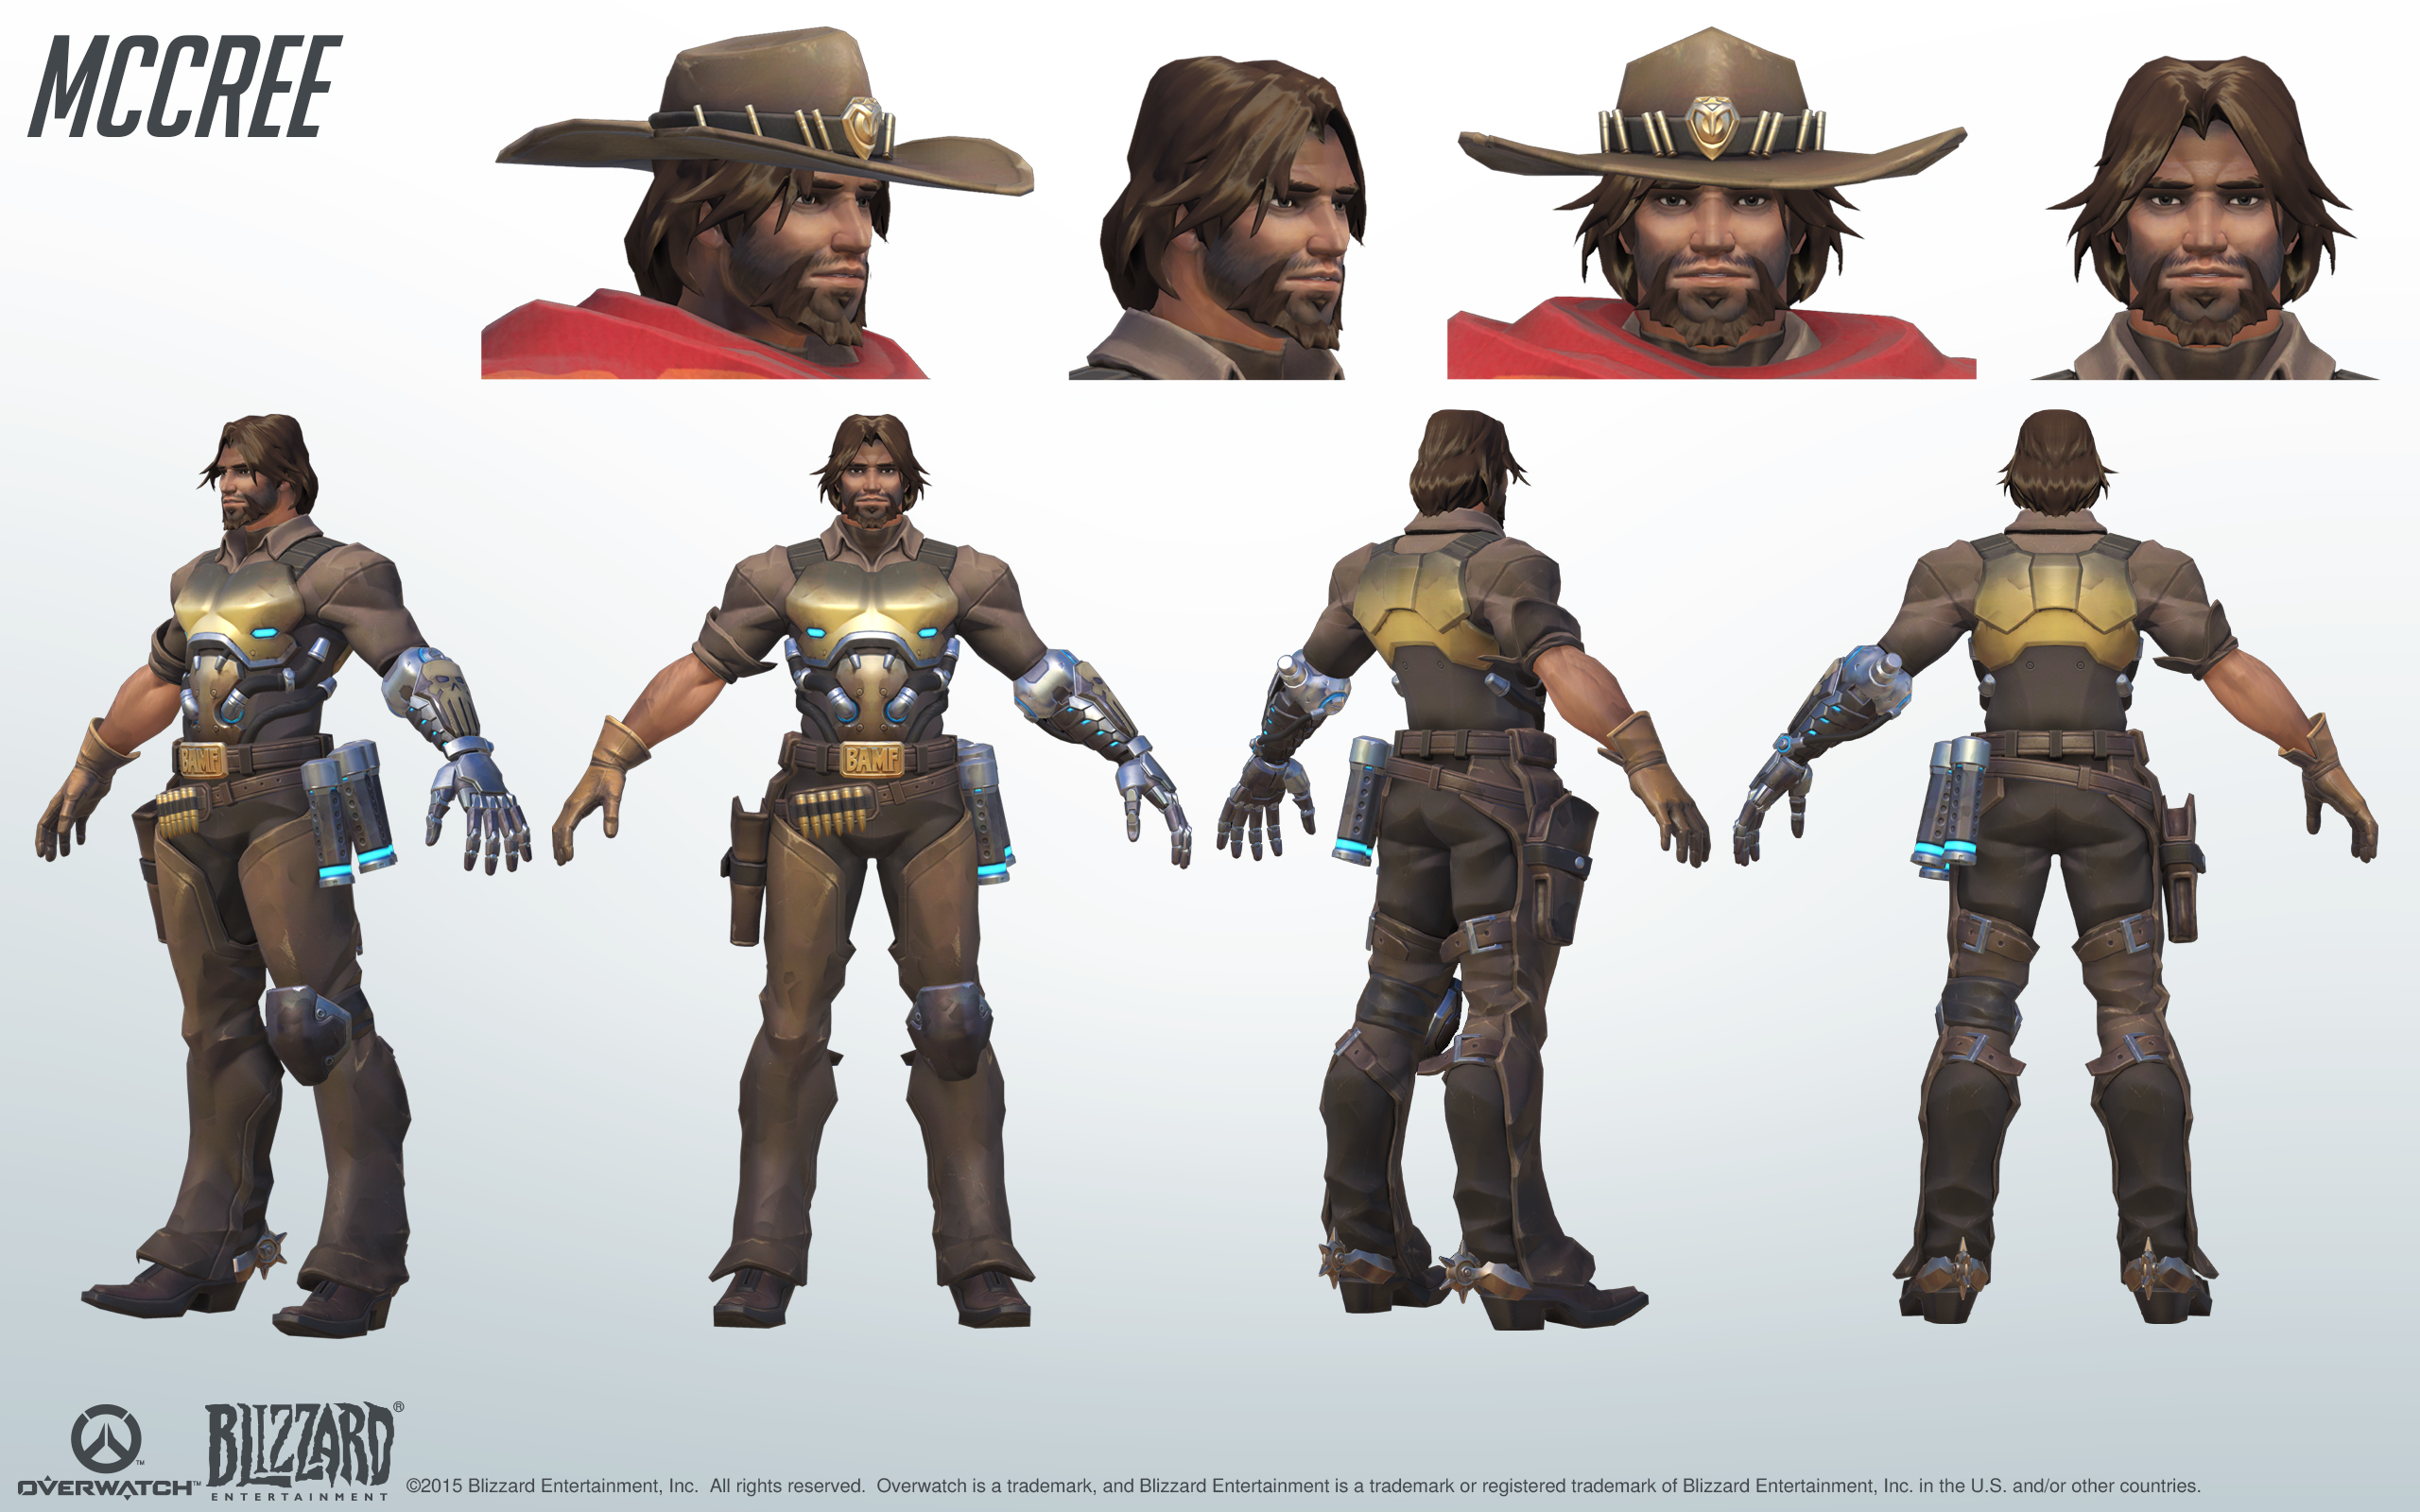 Mccree Cosplay Reference Guide 2 Overwatch Mccree Overwatch Character Art Mccree Cosplay